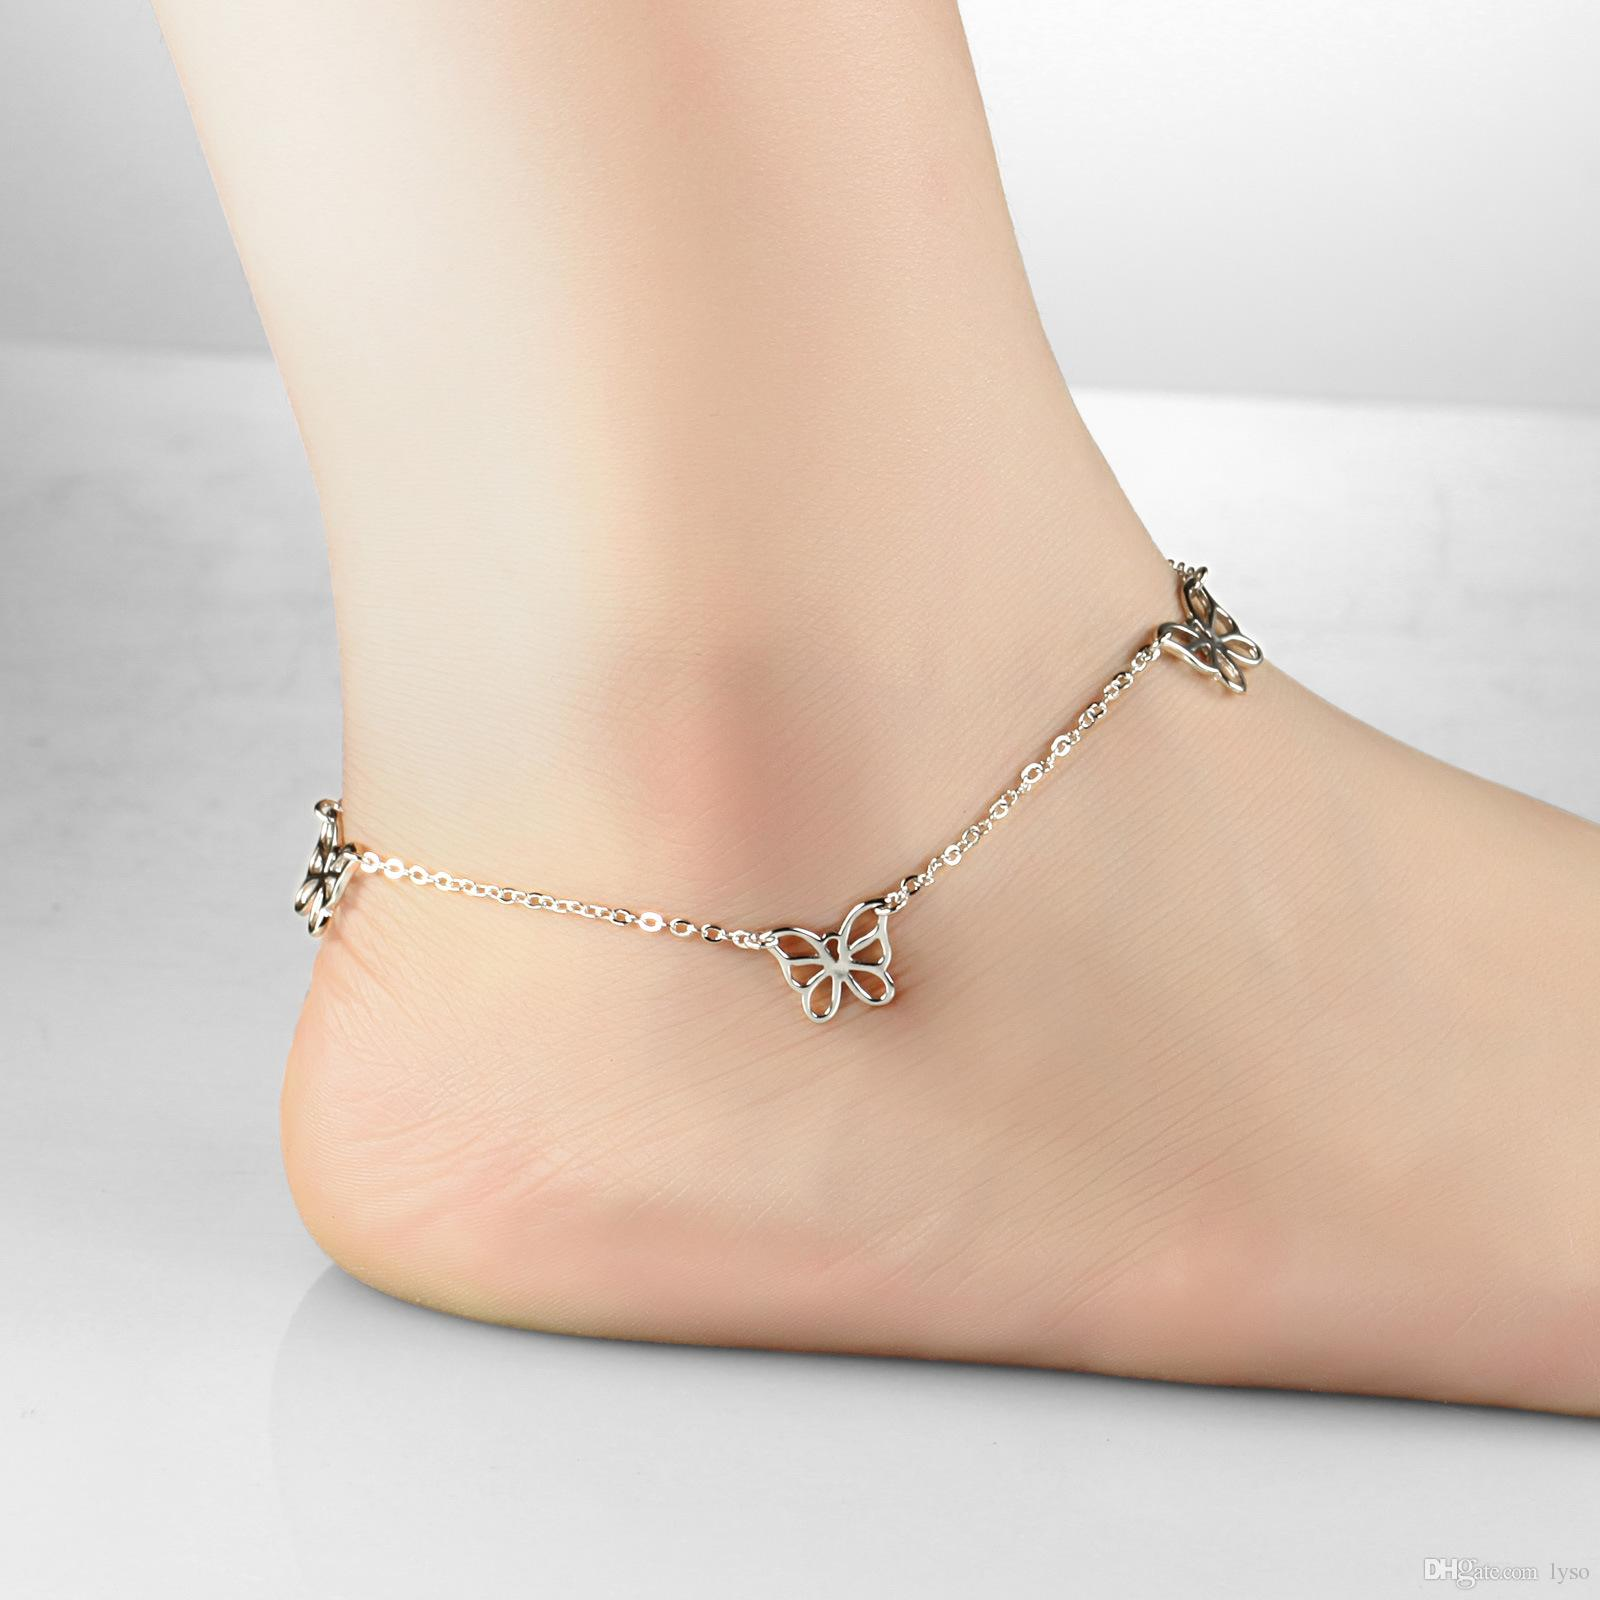 anklet leather shop black riot product be pink brave salt